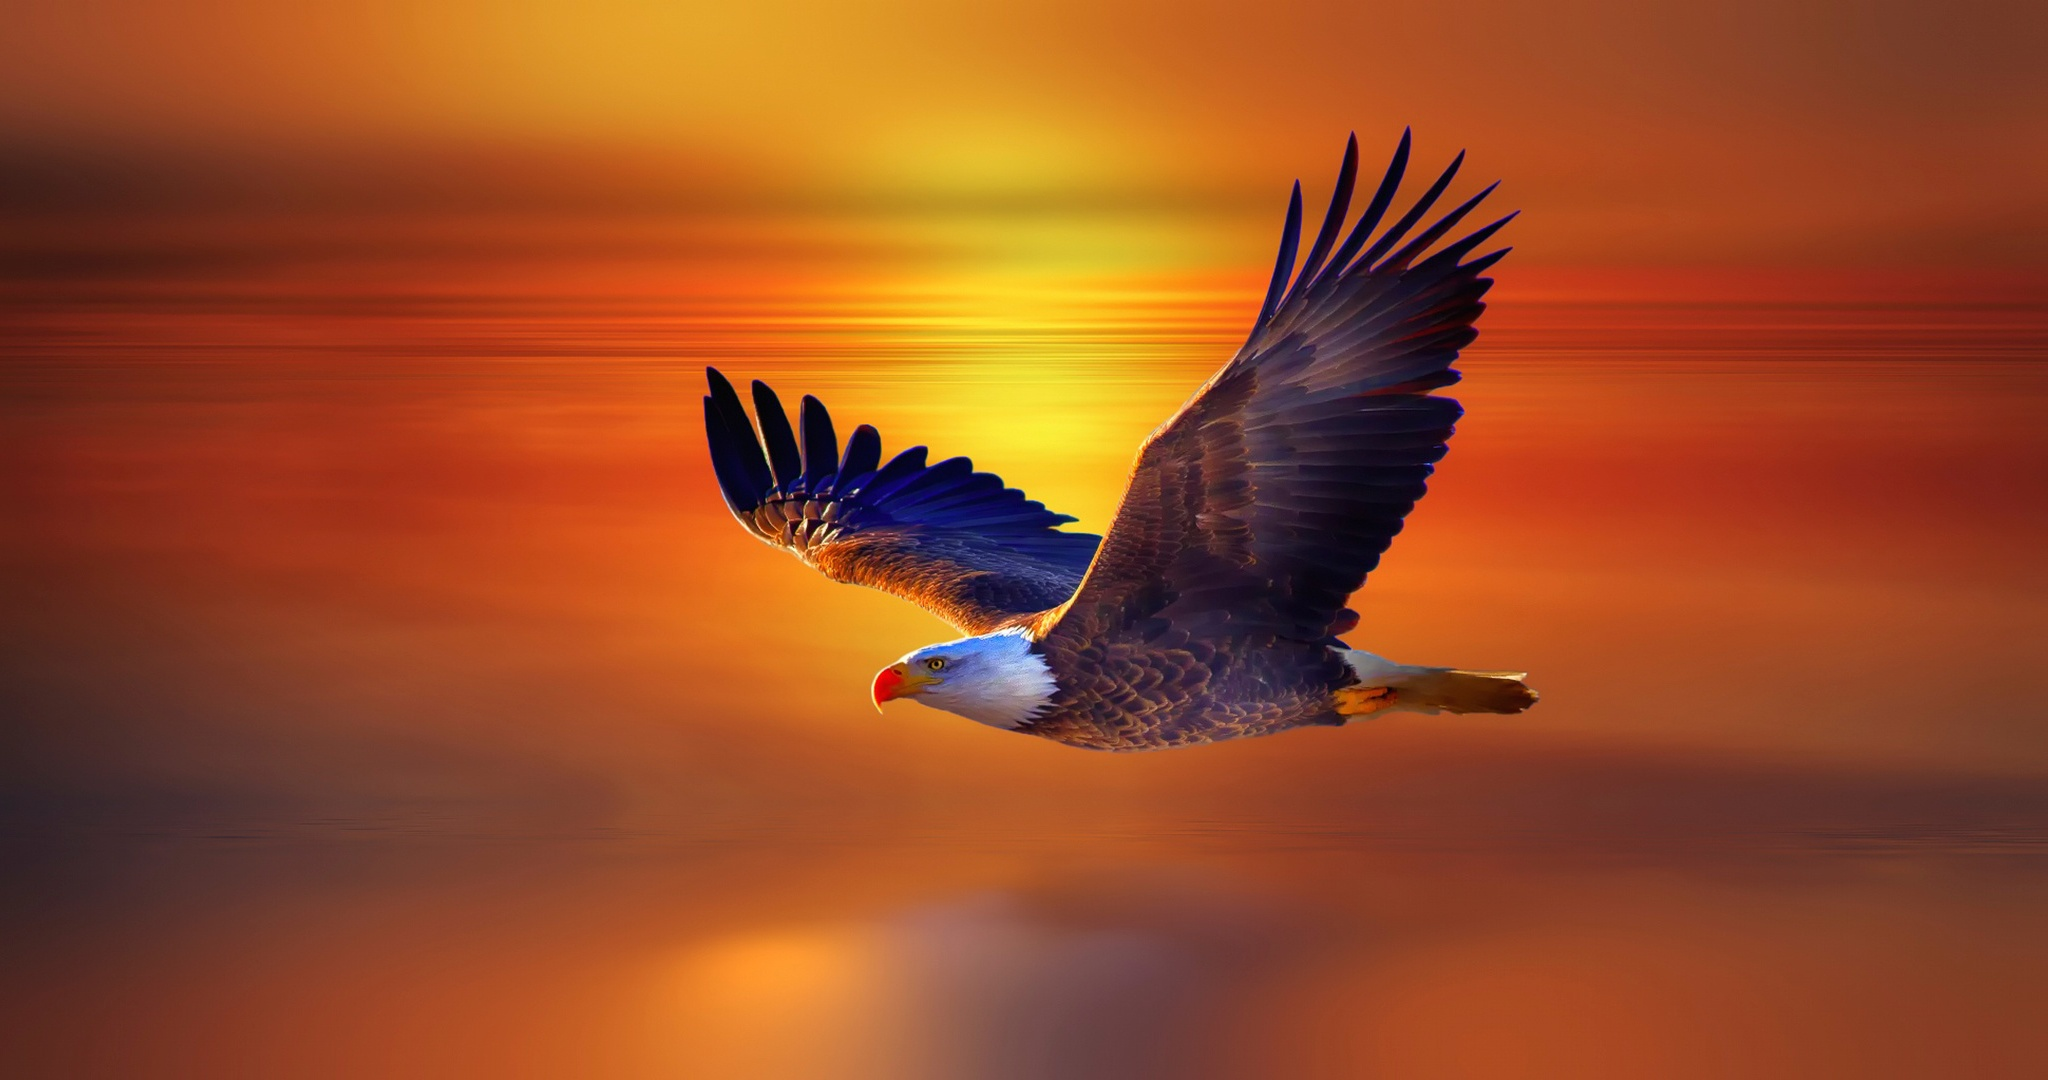 Bald eagle hd birds 4k wallpapers images backgrounds photos and bald eagle voltagebd Image collections